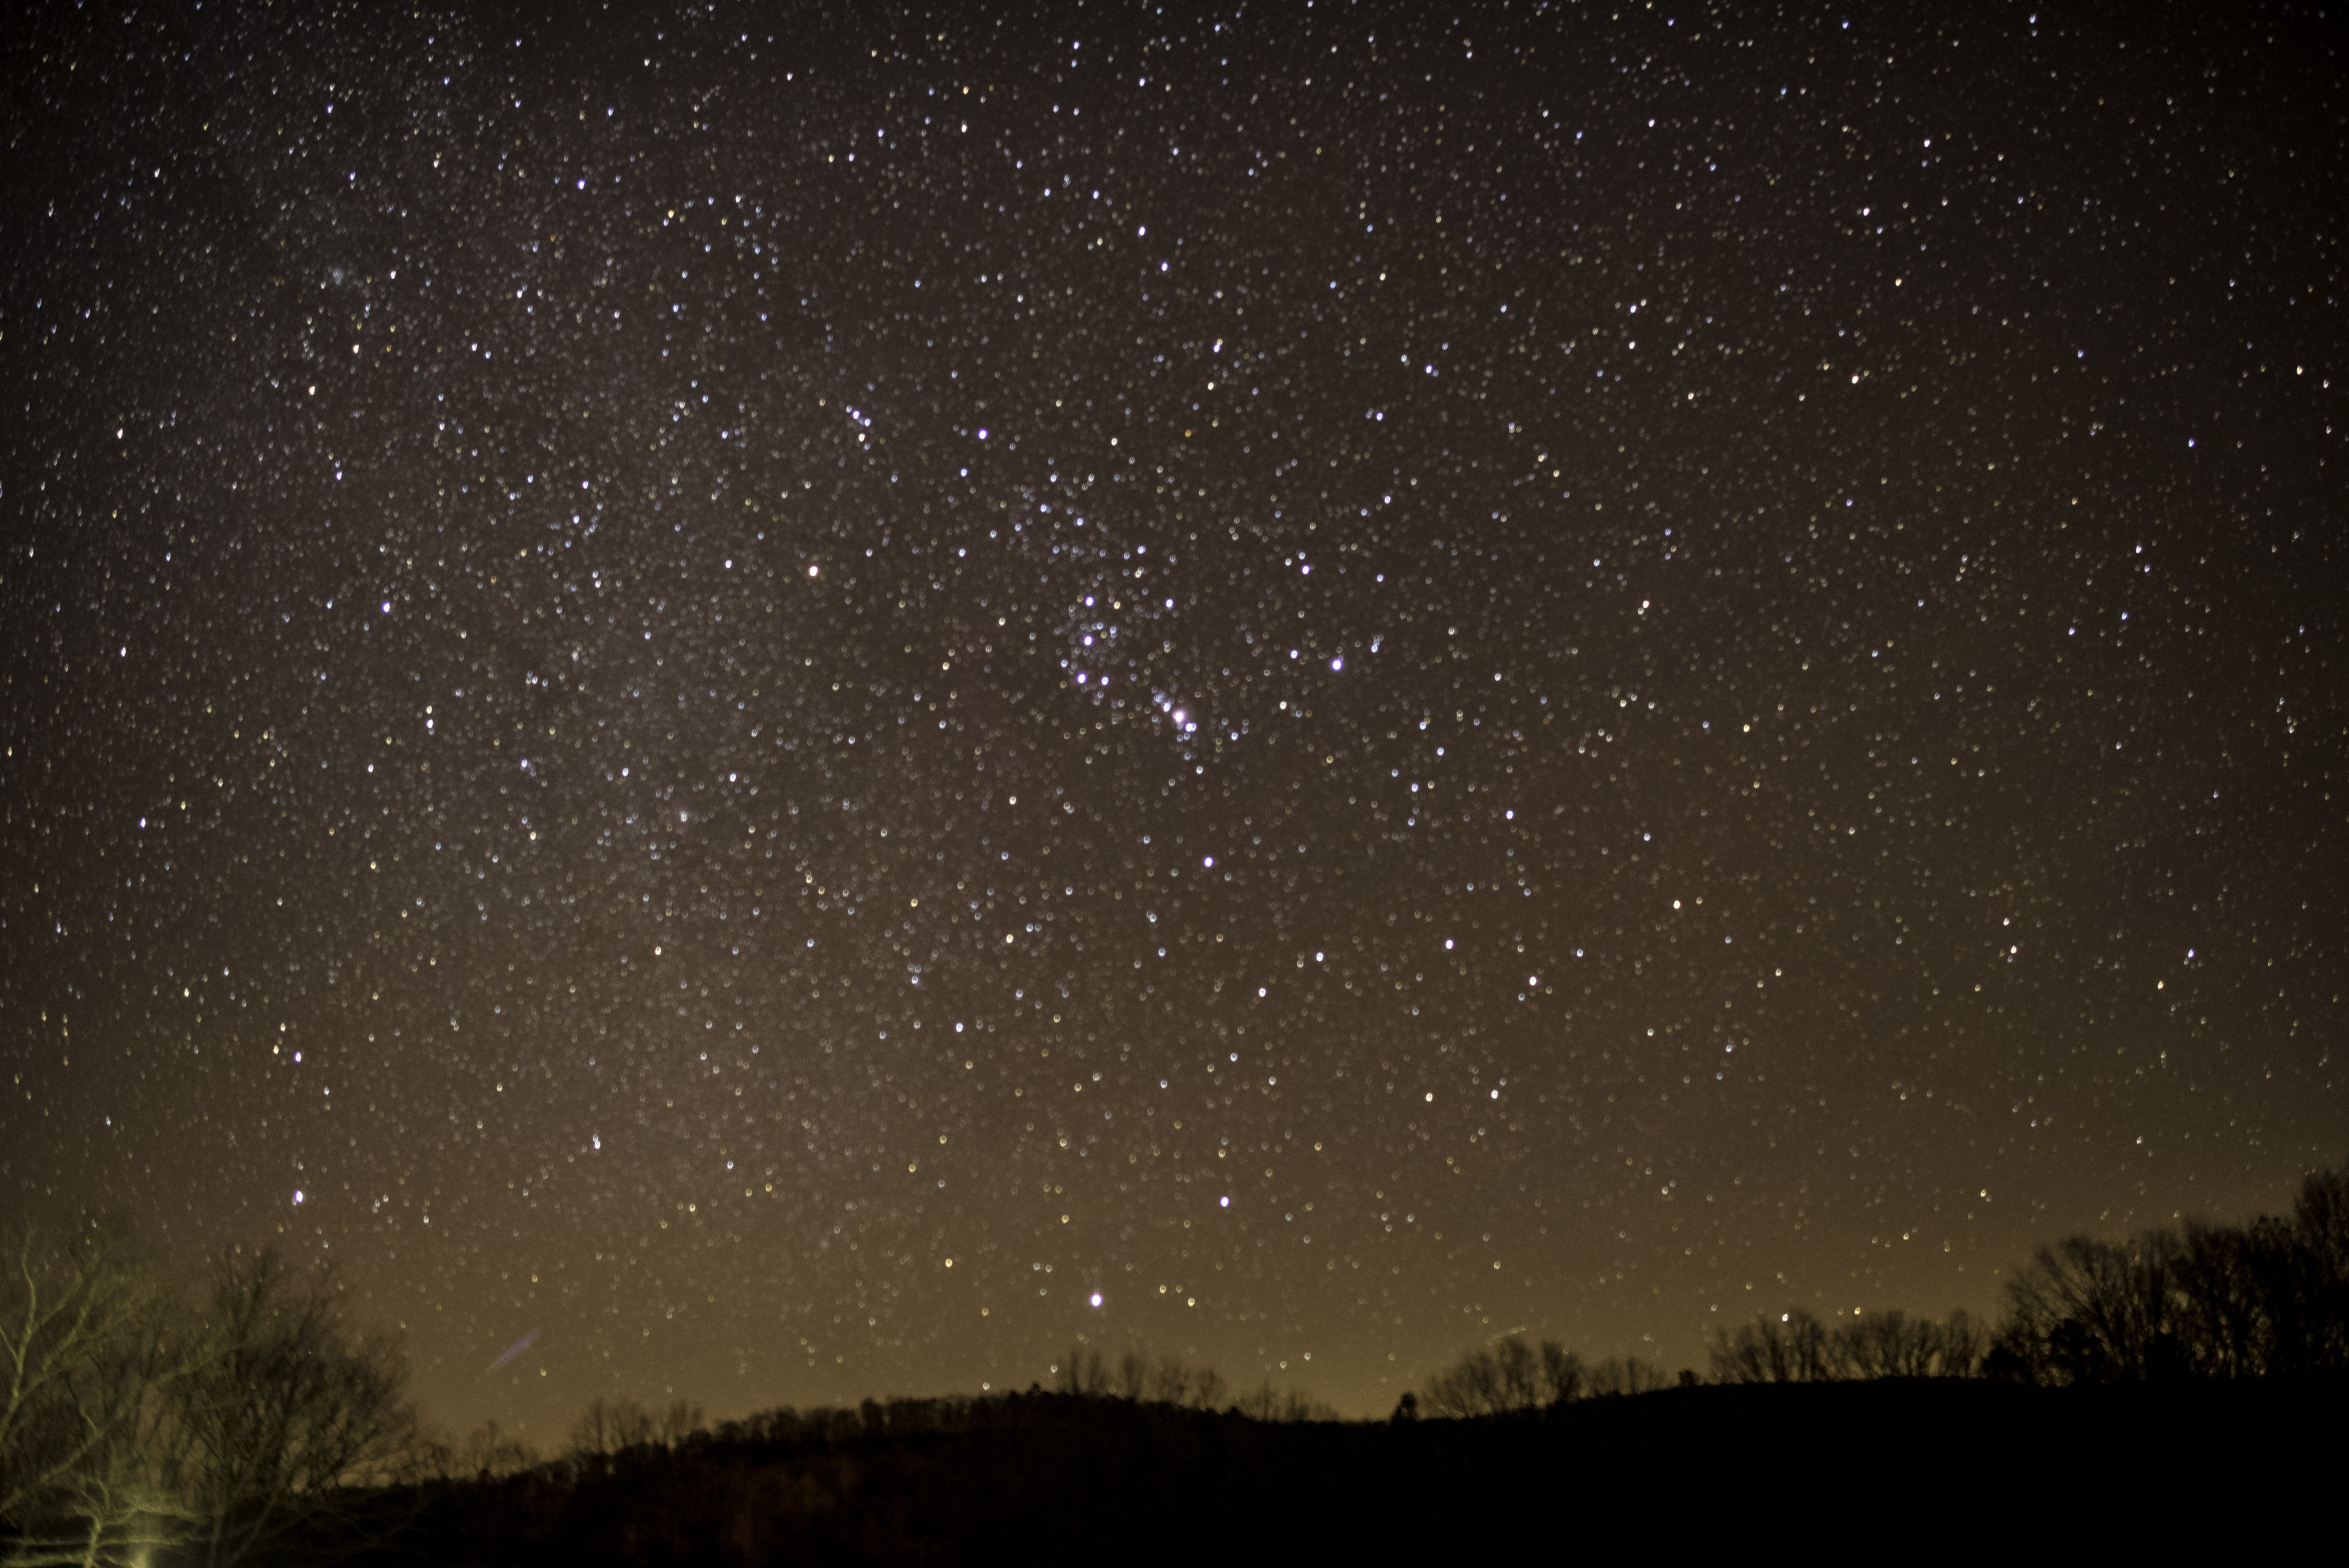 Lots of Stars night Sky with hills in Echo Bluff State ...